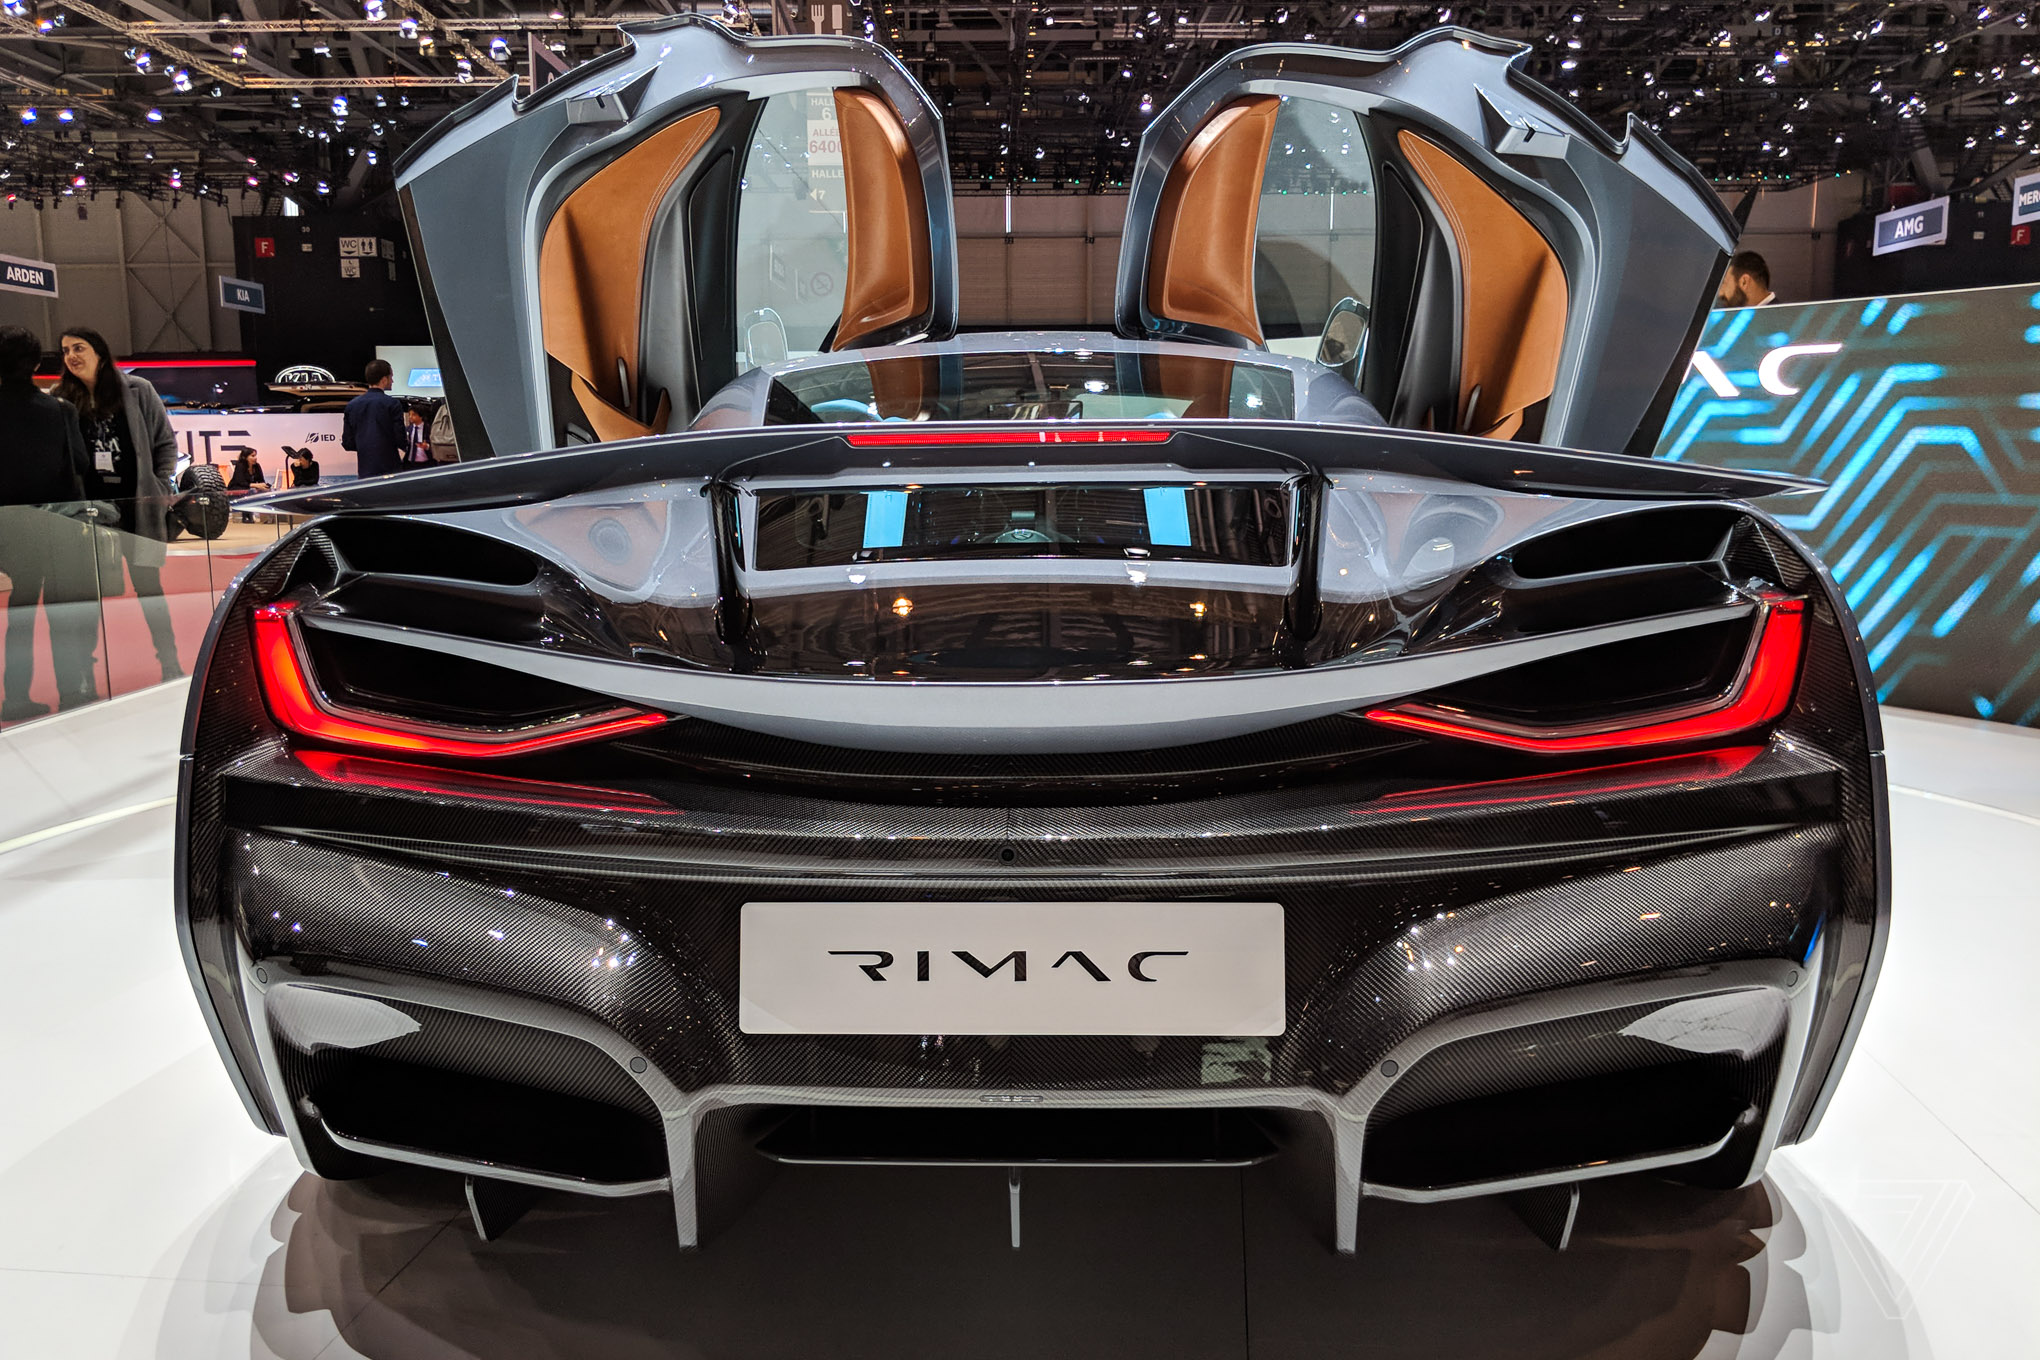 Rimac Concept Two Photo By Vlad Savov The Verge